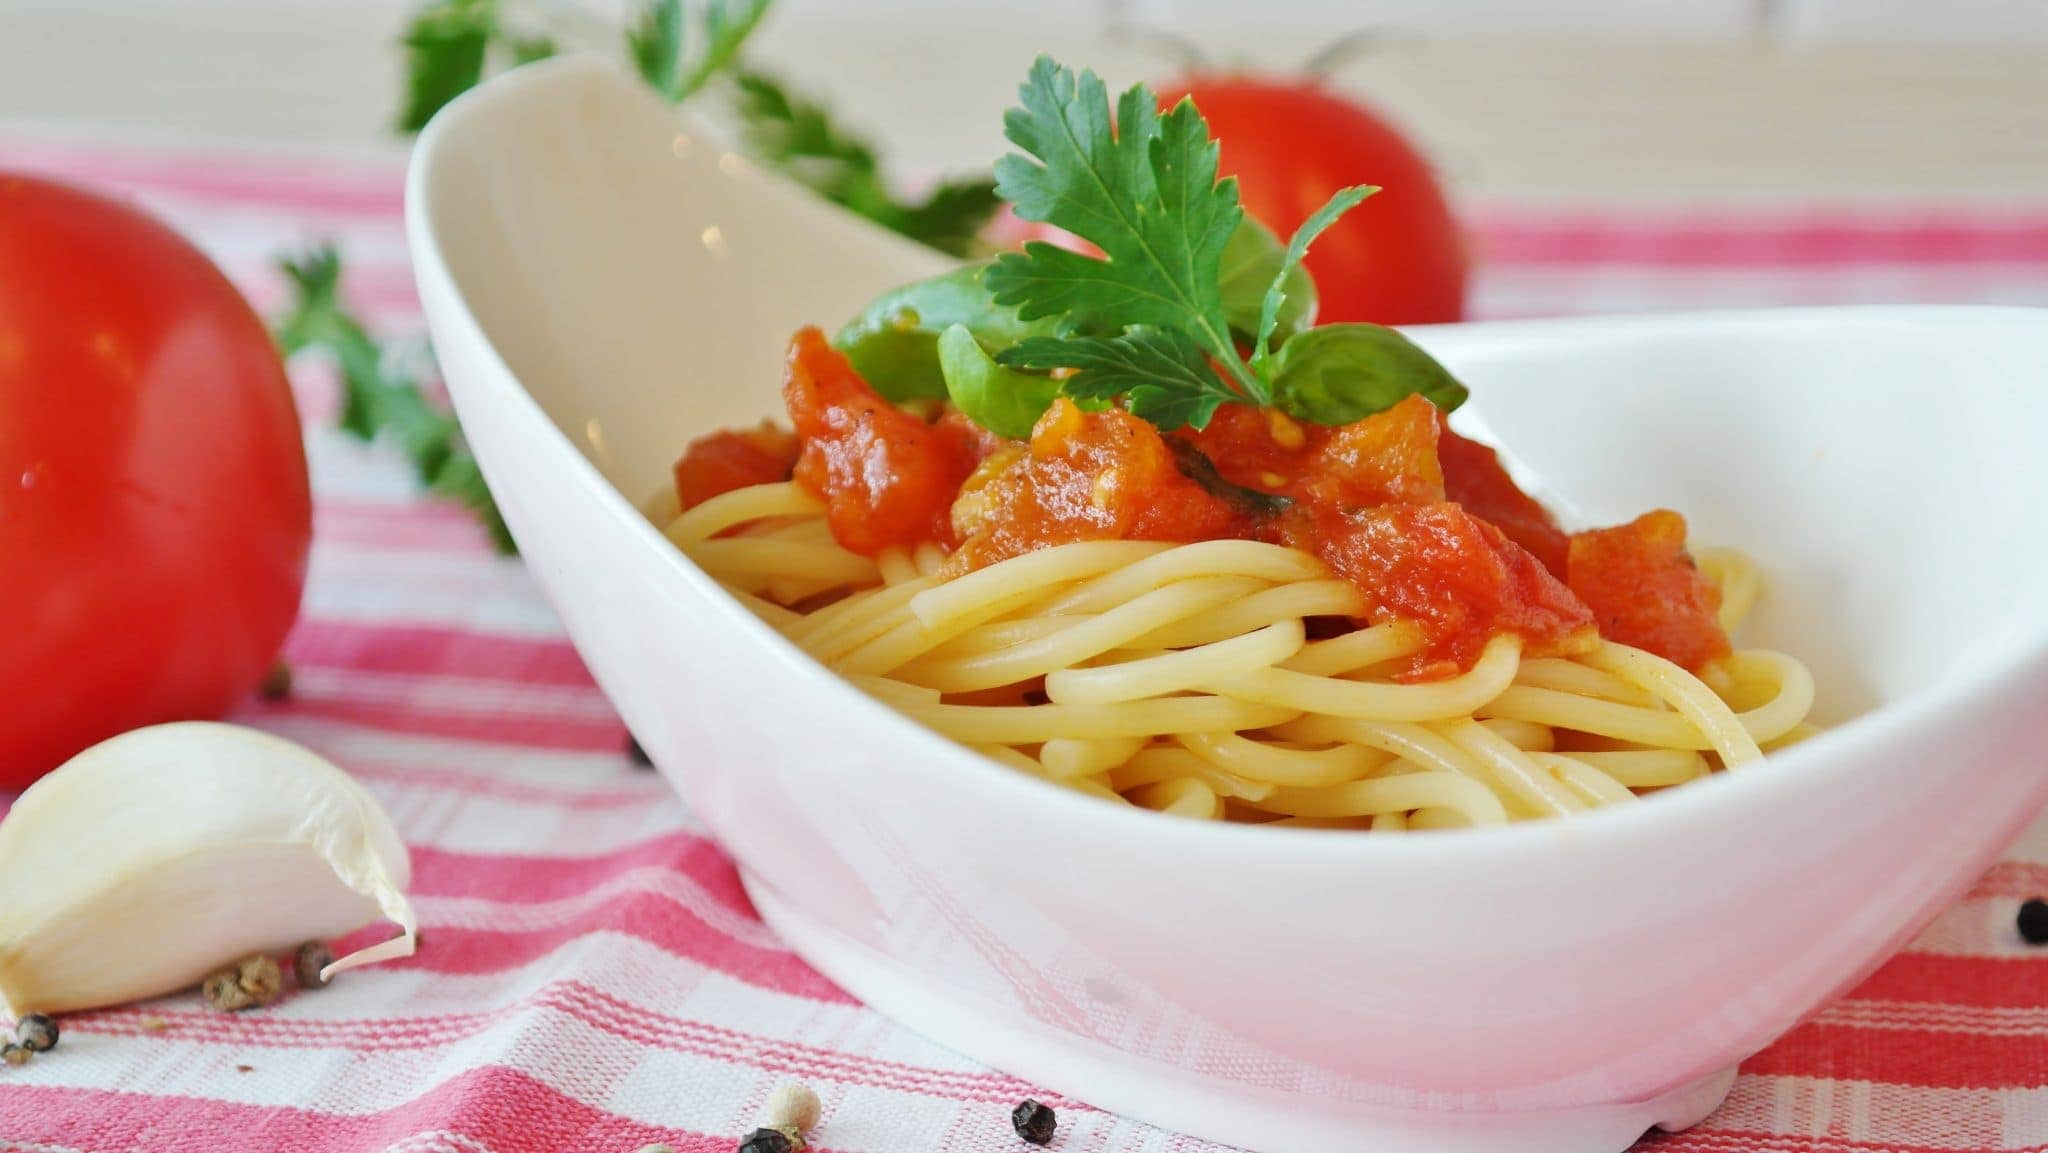 Another version of pasta al pomodoro